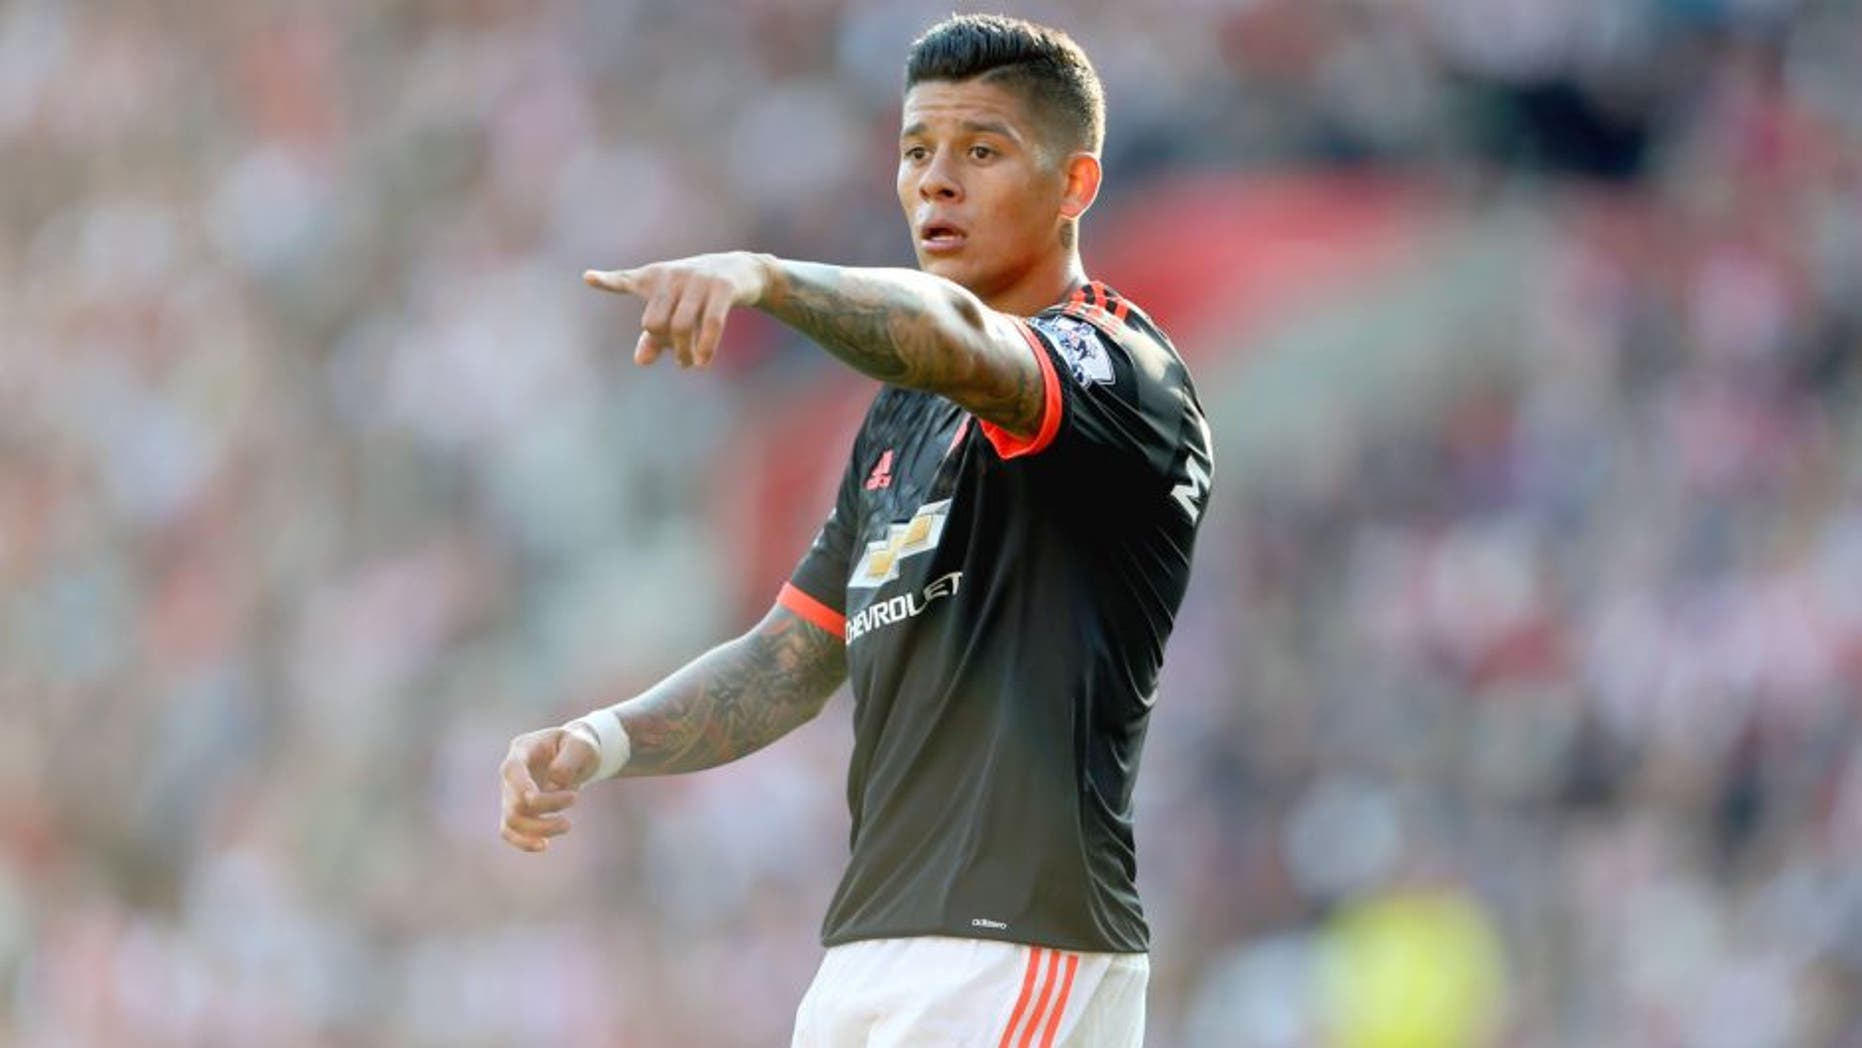 SOUTHAMPTON, ENGLAND - SEPTEMBER 20: Marcos Rojo of Manchester United during the Barclays Premier League match at St Mary's stadium between Southampton and Manchester United on September 20, 2015 in Southampton, United Kingdom. (Photo by Catherine Ivill - AMA/Getty Images)